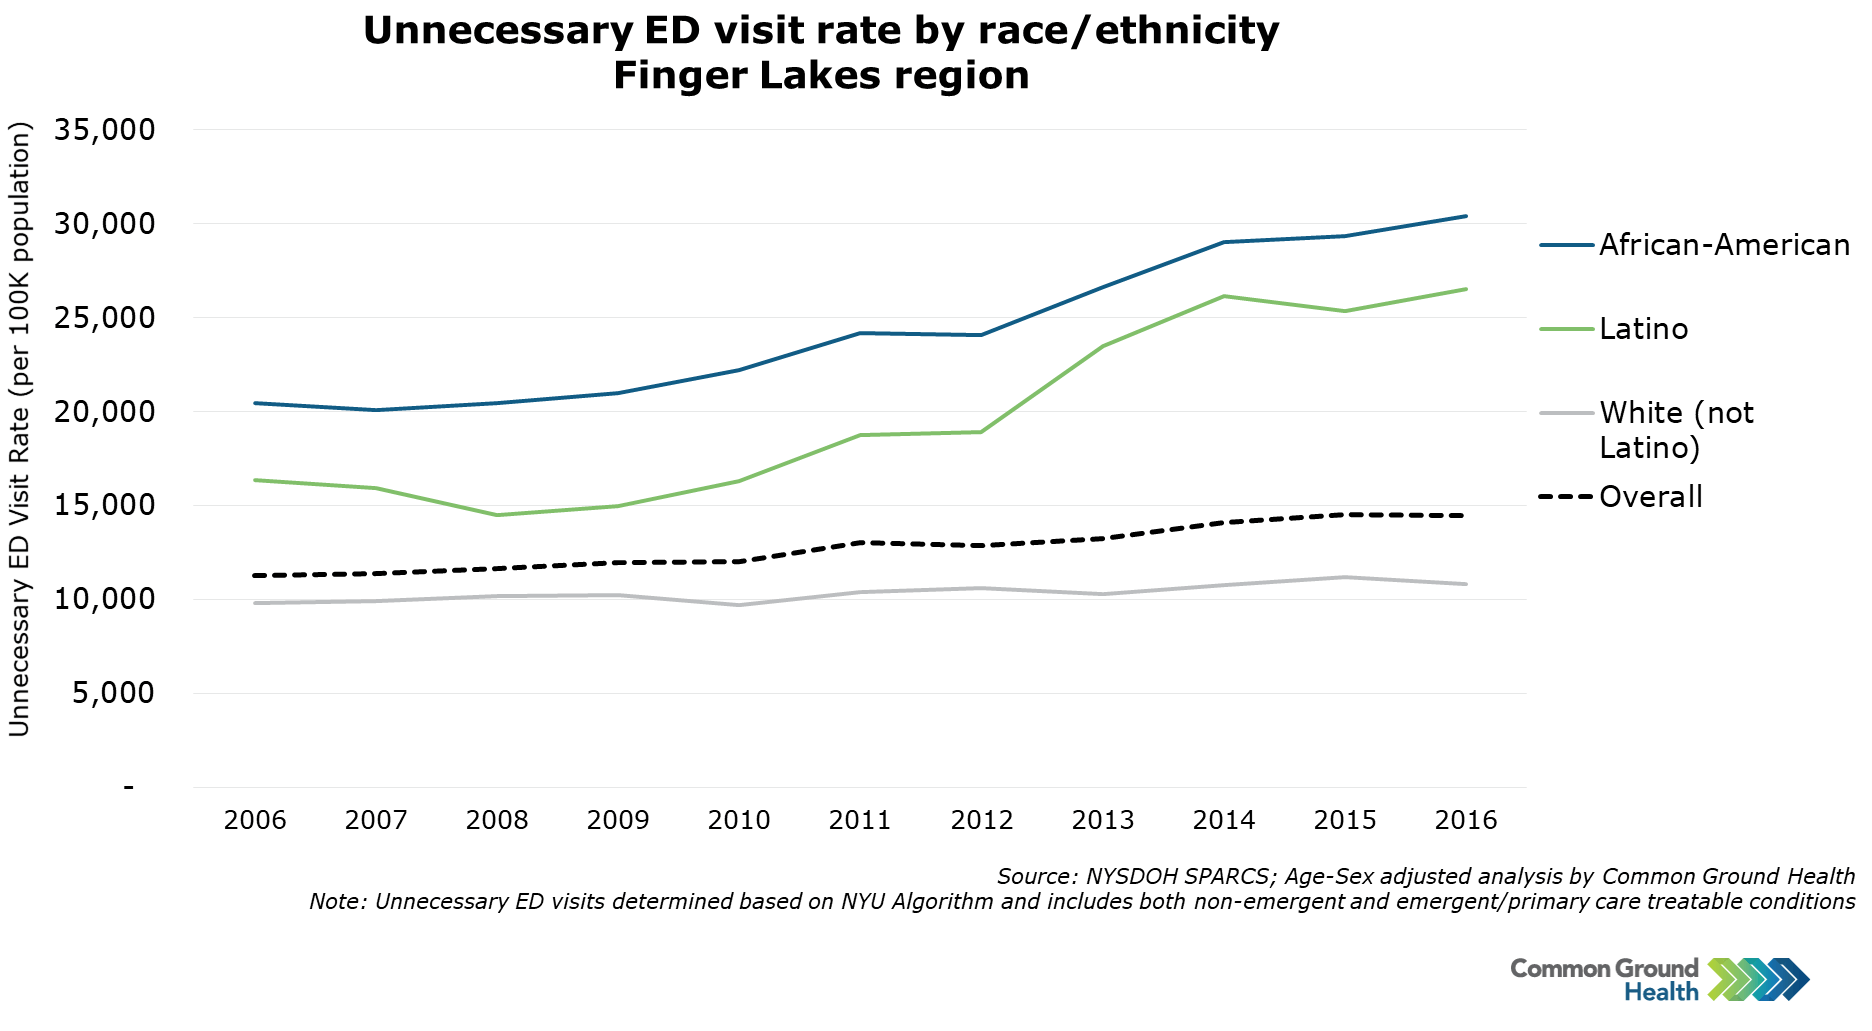 Unnecessary Emergency Department Visit Rate by Race/Ethnicity